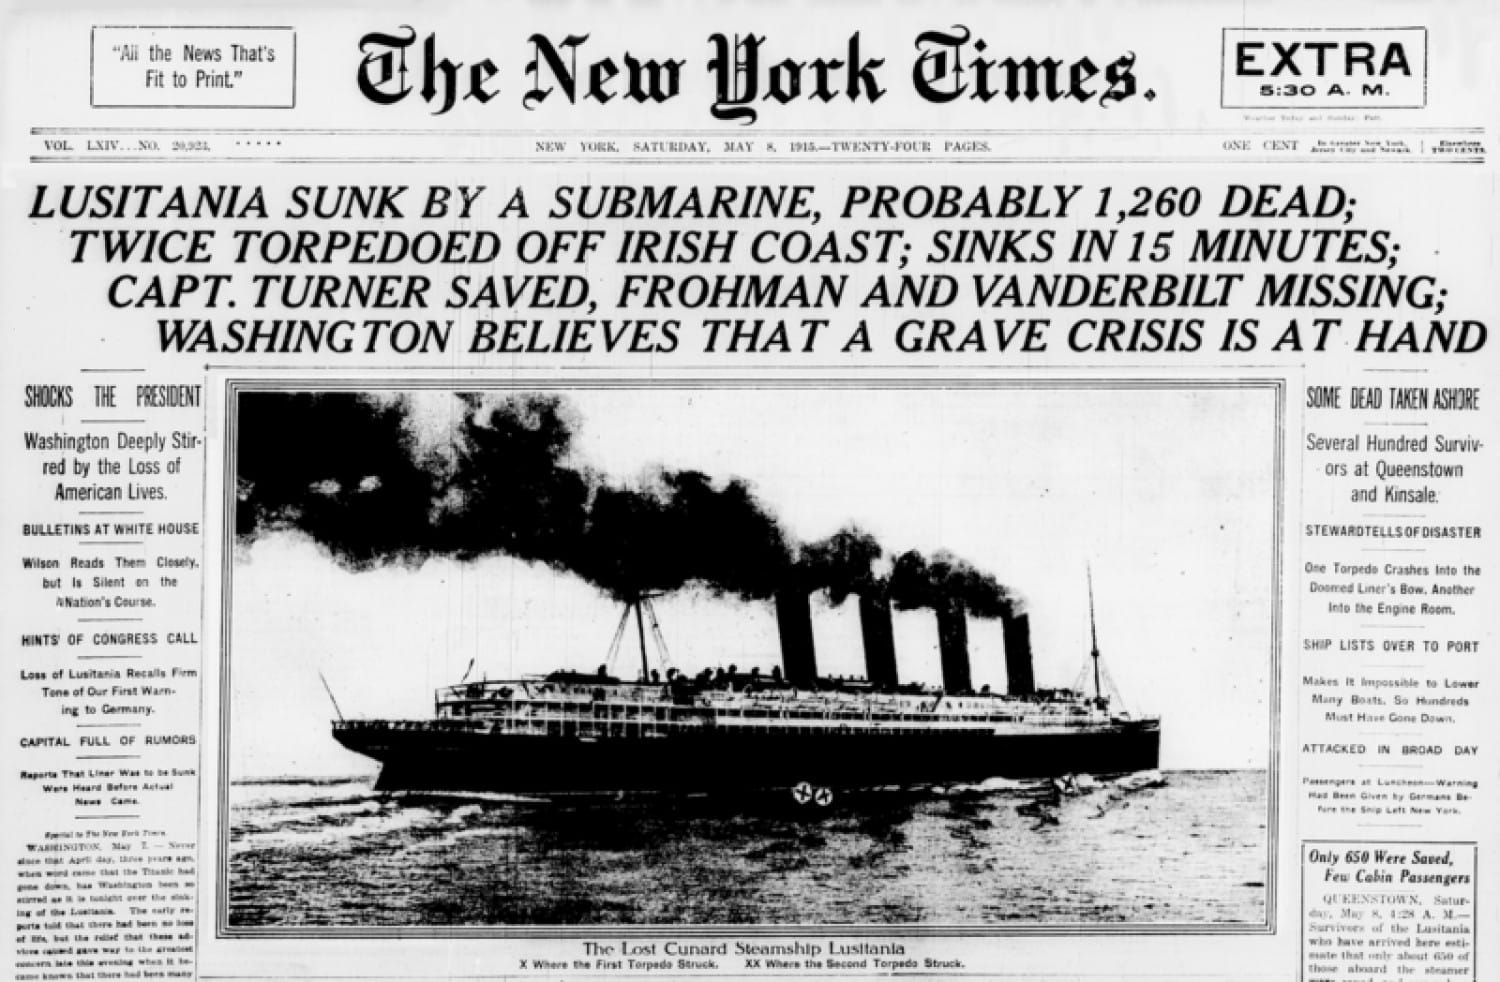 How the New York Times reported the sinking